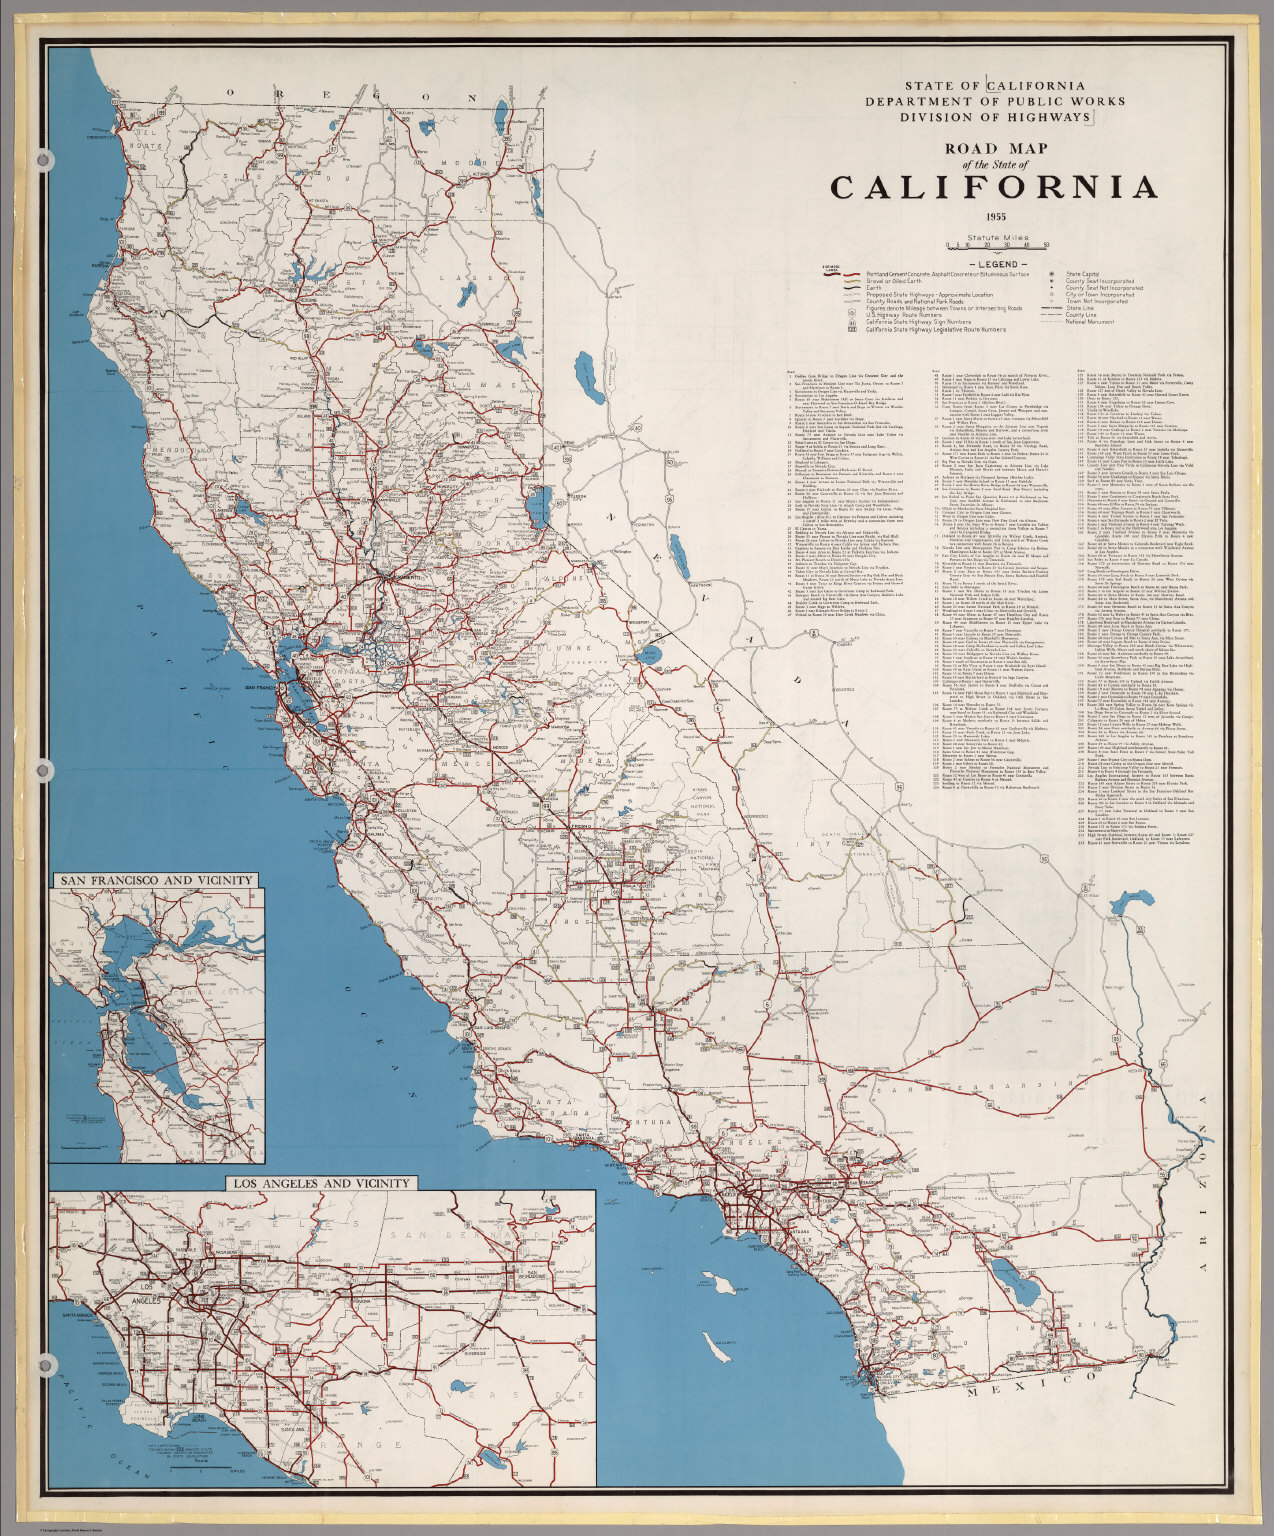 Road Map Of The State Of California David Rumsey - Road map california